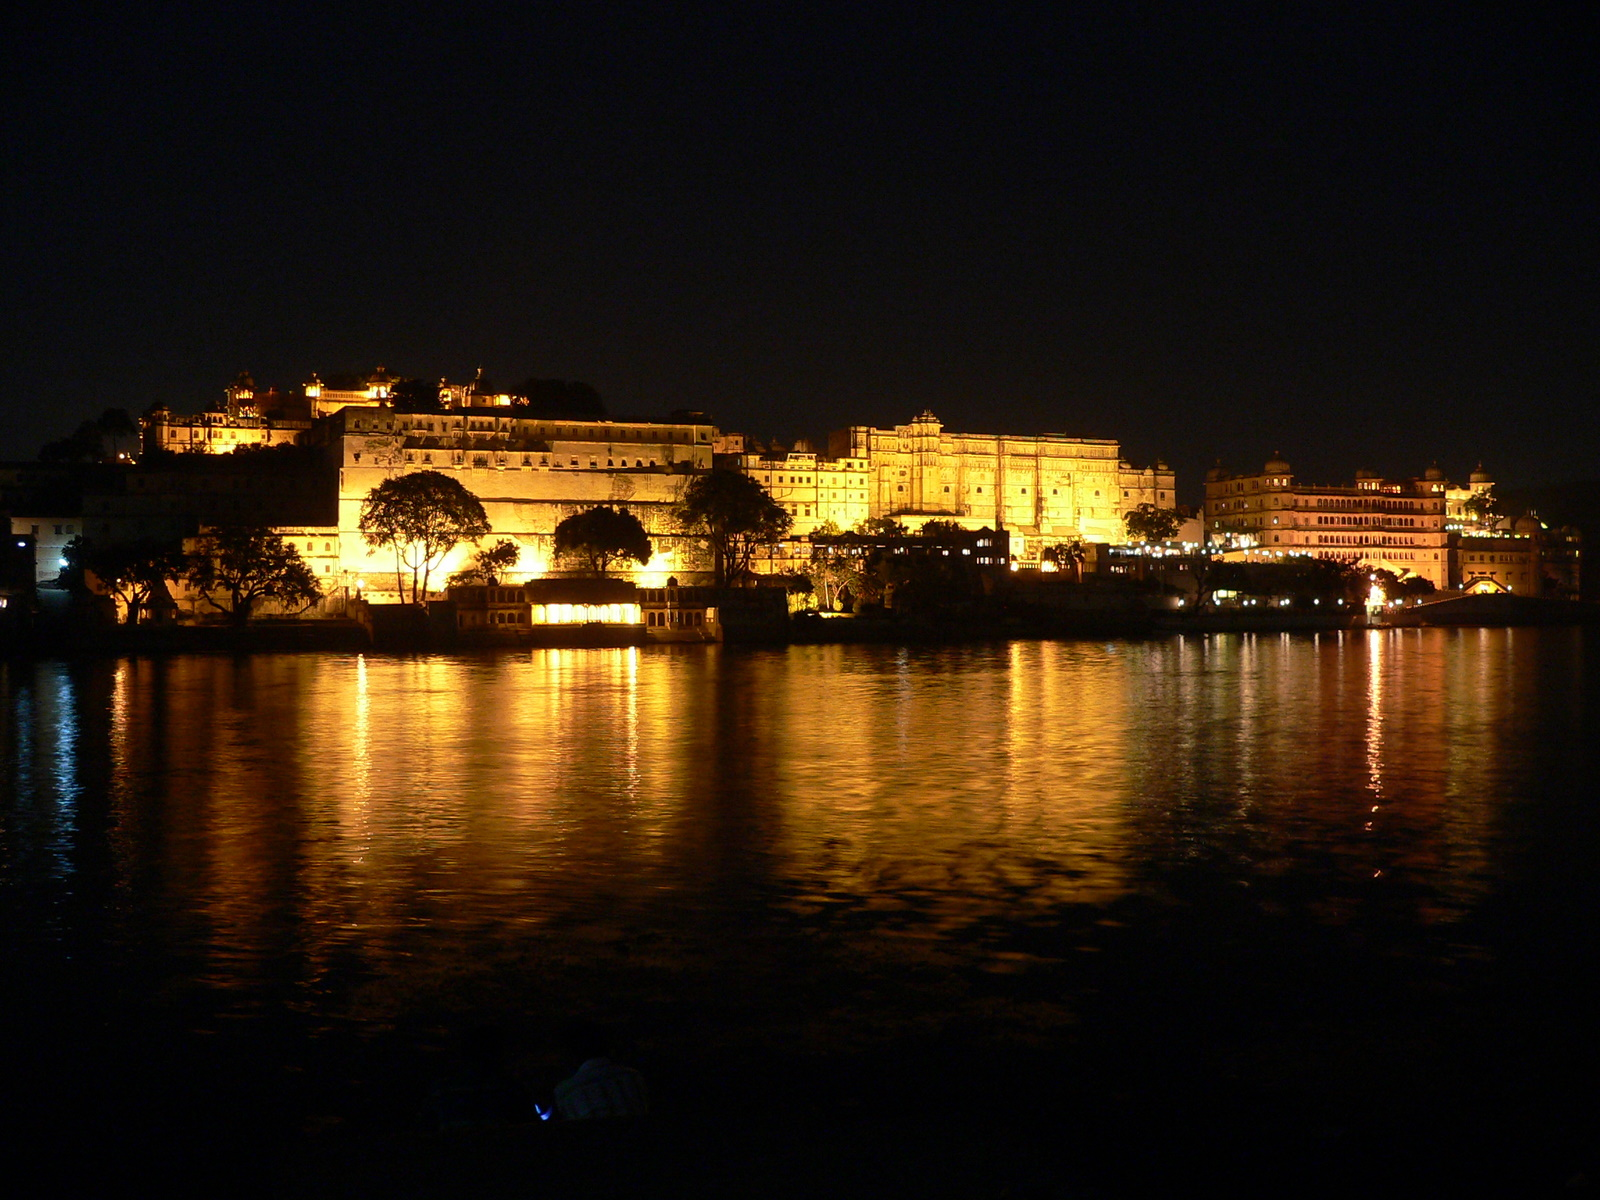 Udaipur Palace at night